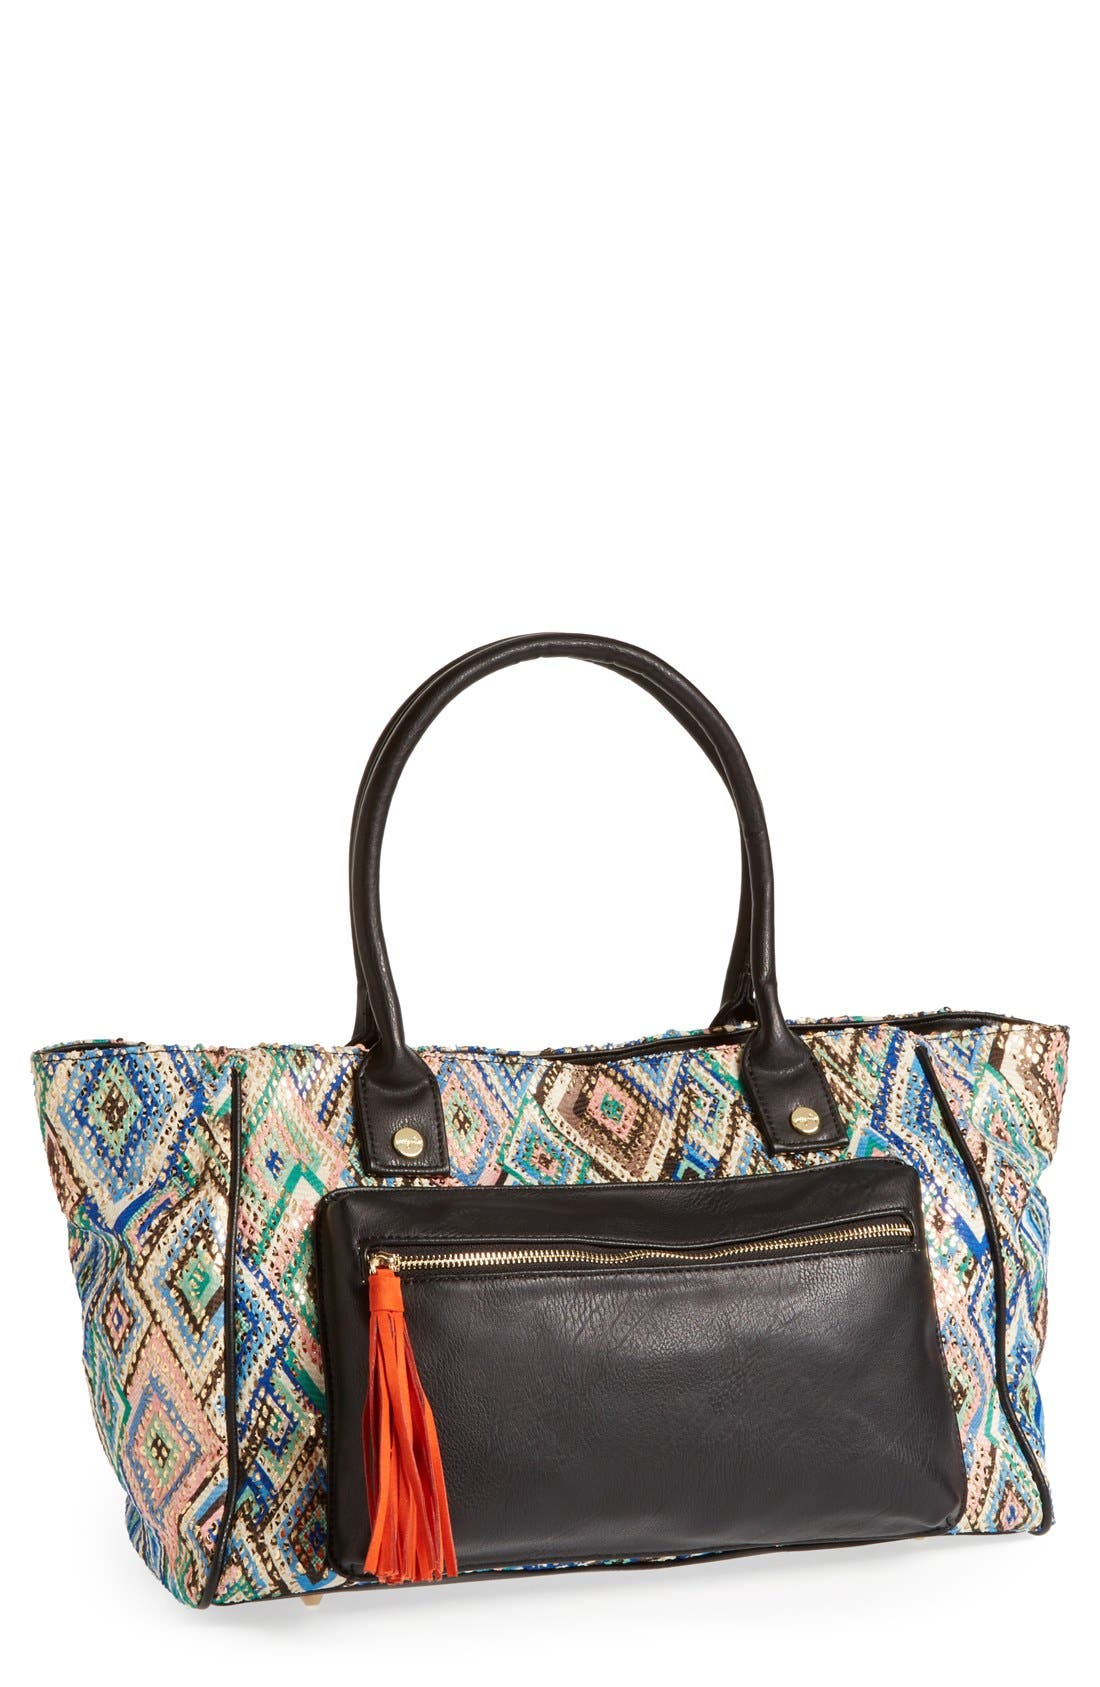 Alternate Image 1 Selected - pretty ships 'Bahia' Print Fabric & Faux Leather Tote